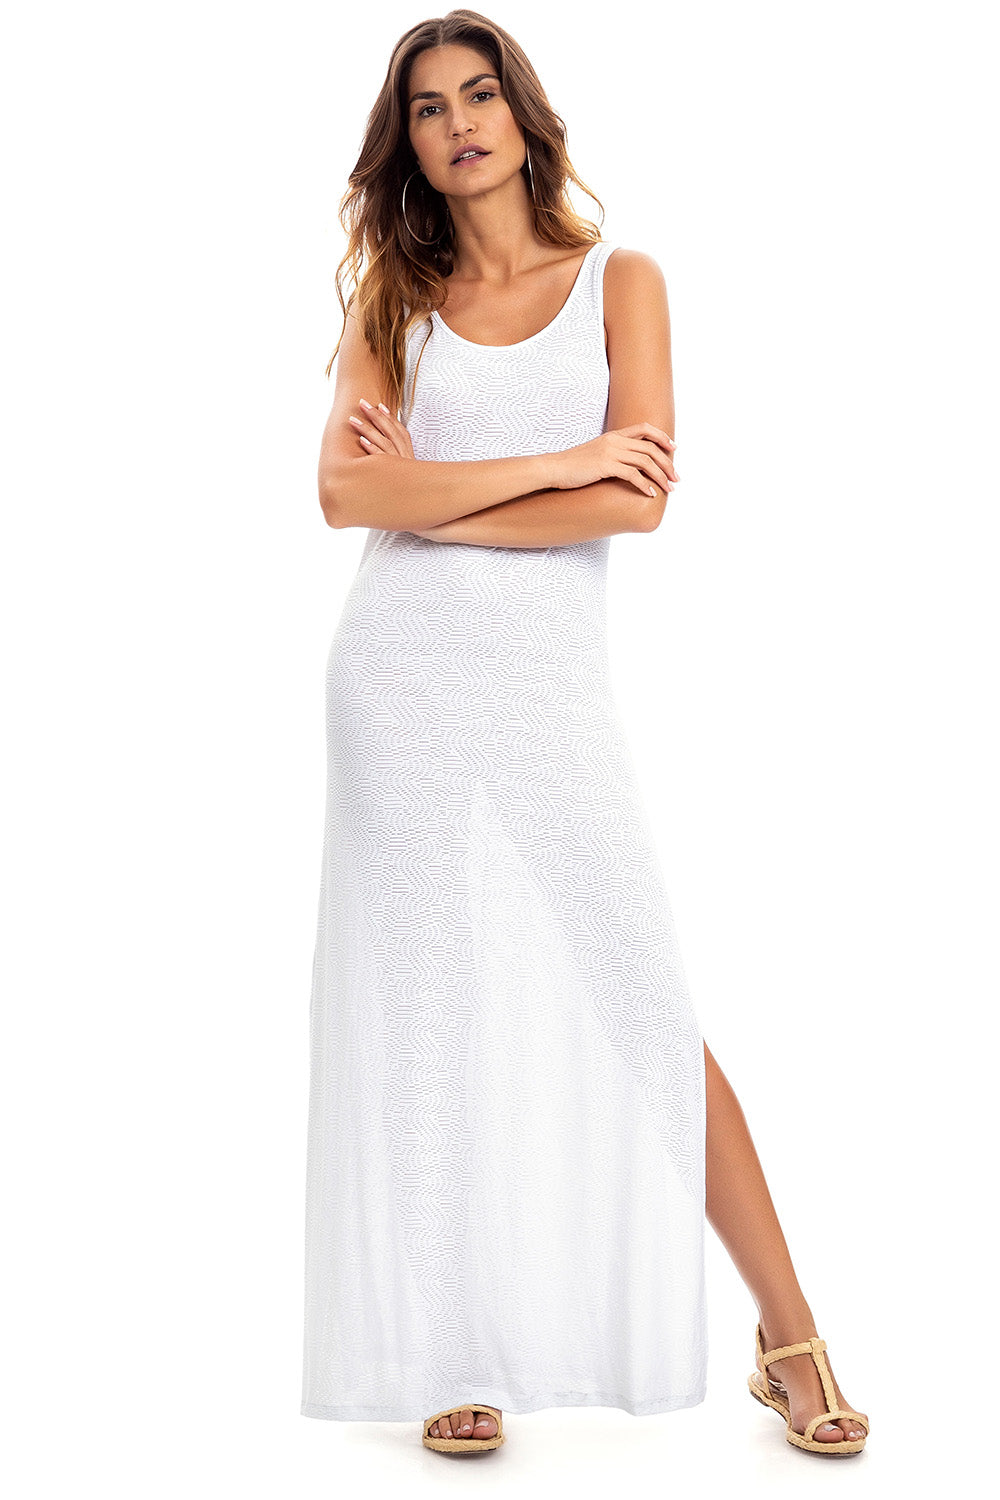 Beach Sand Essential Long Dress 1